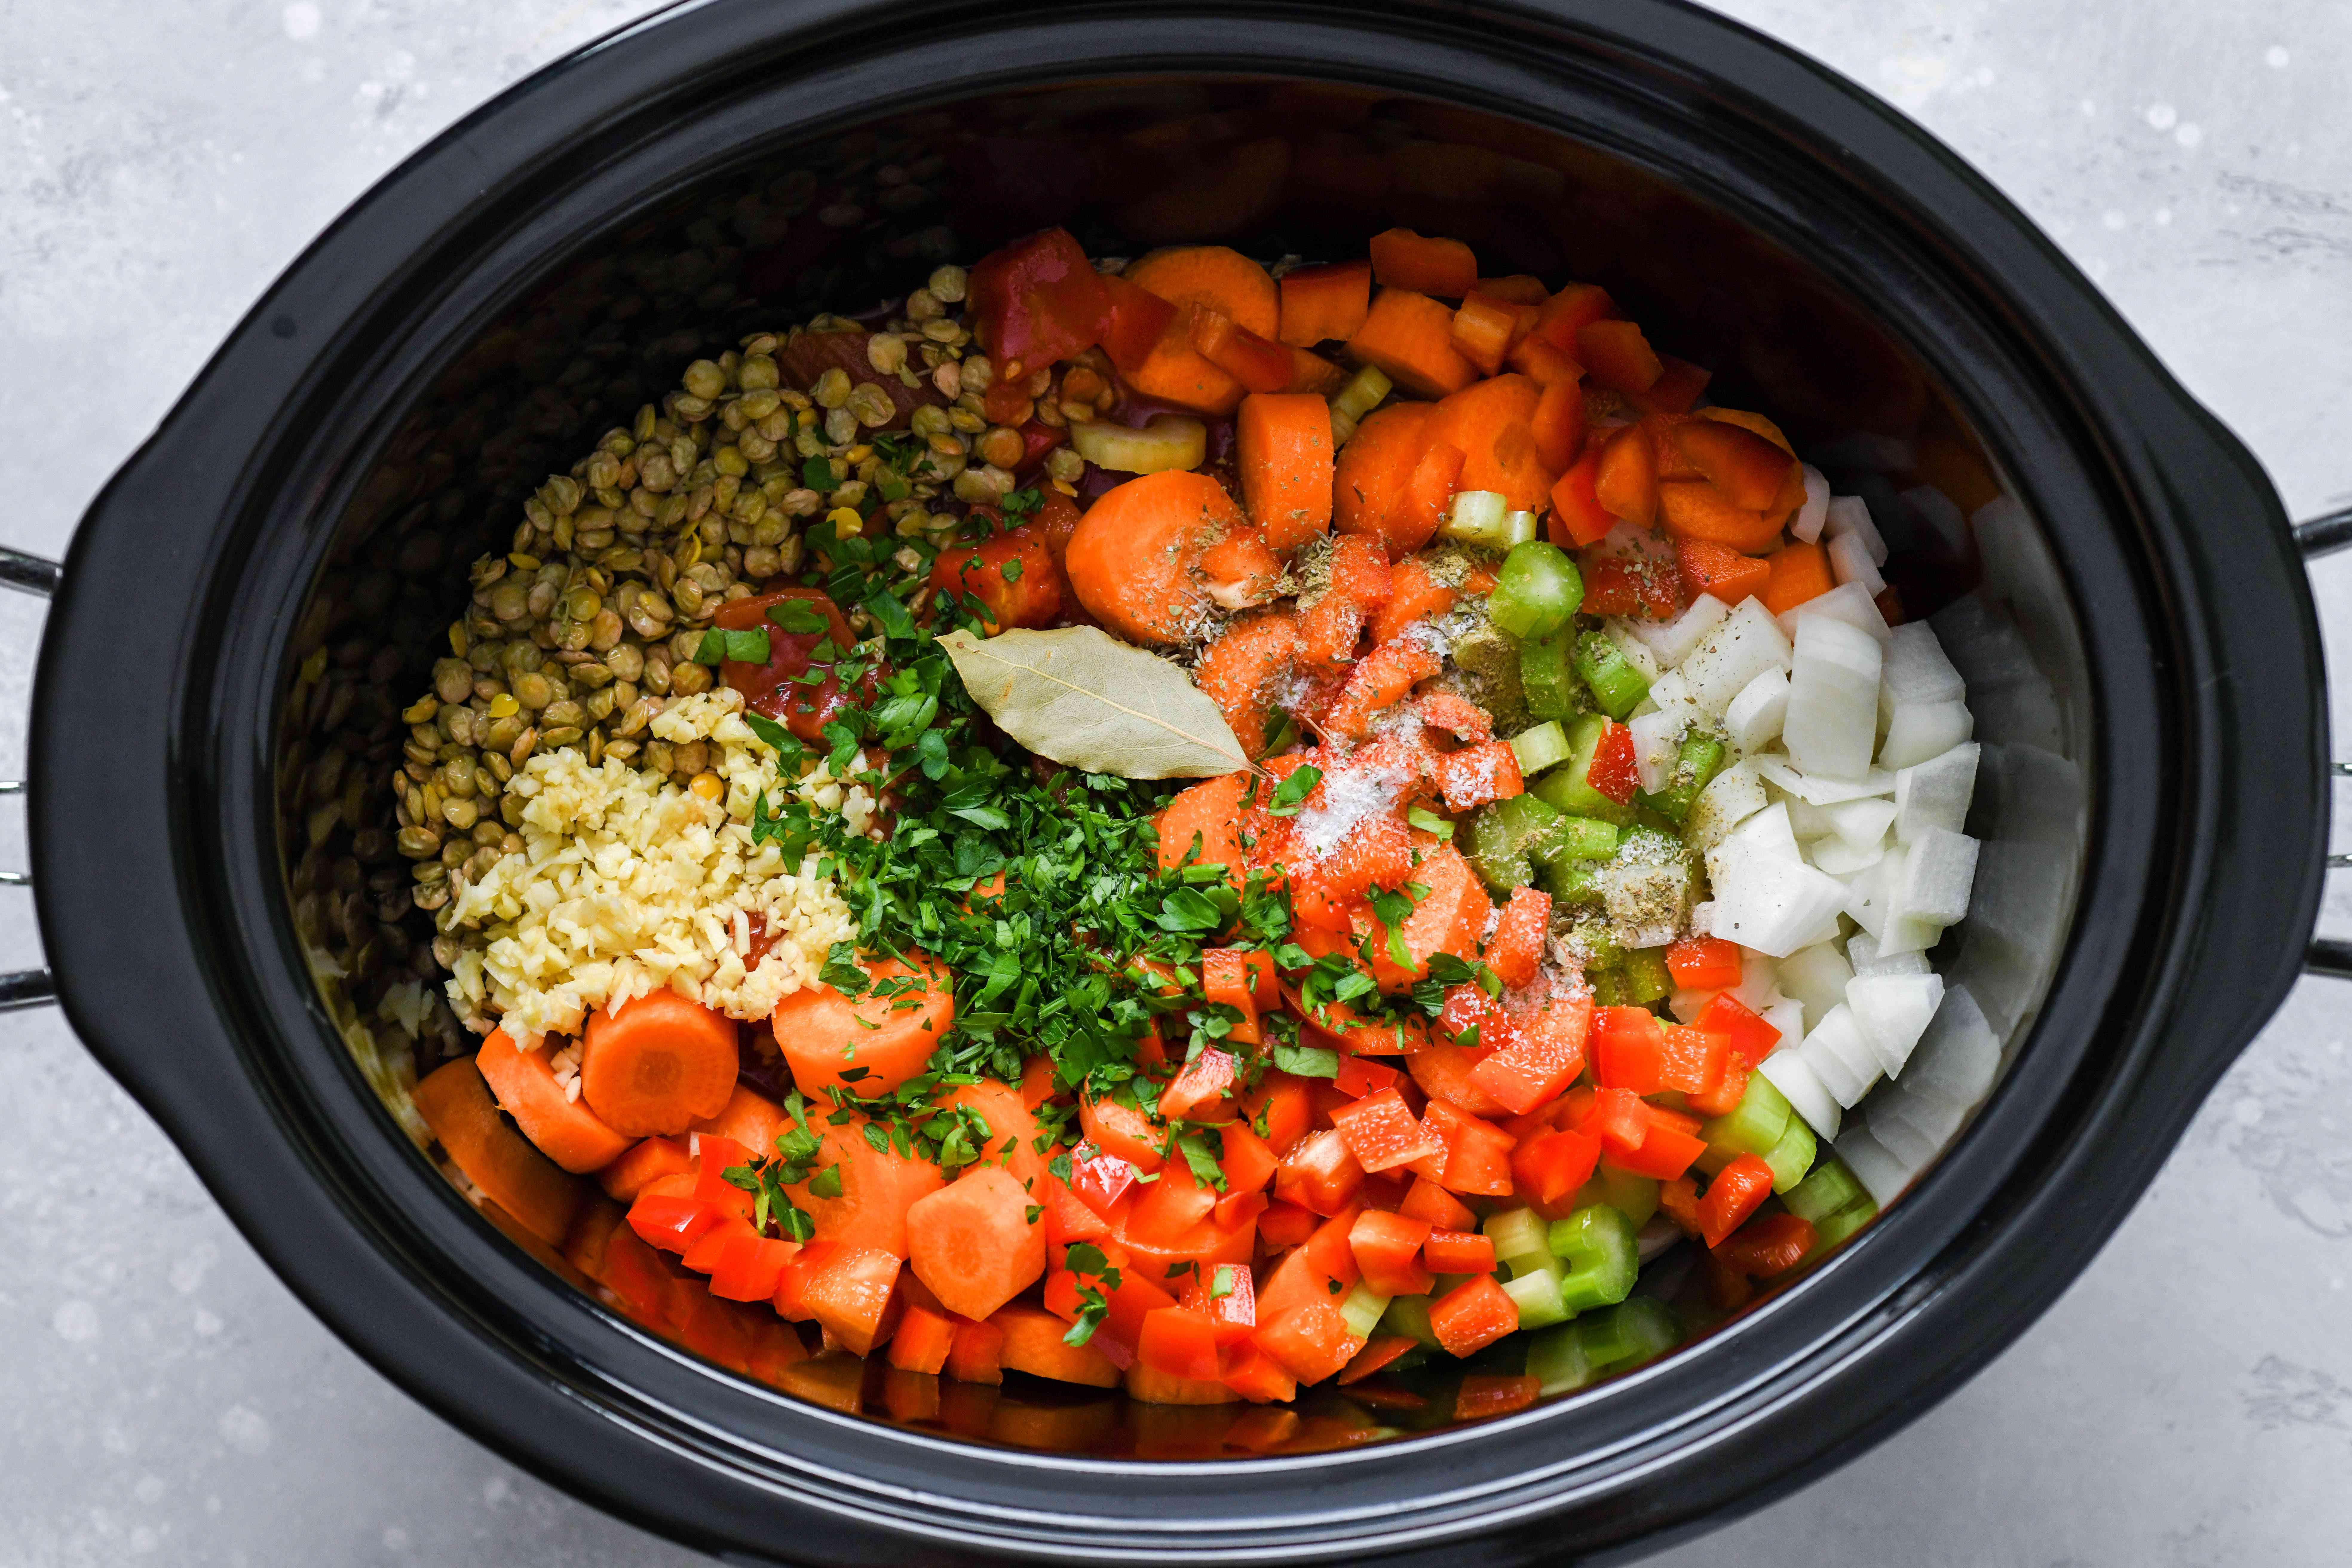 Place all ingredients, except the cheese, in the slow cooker